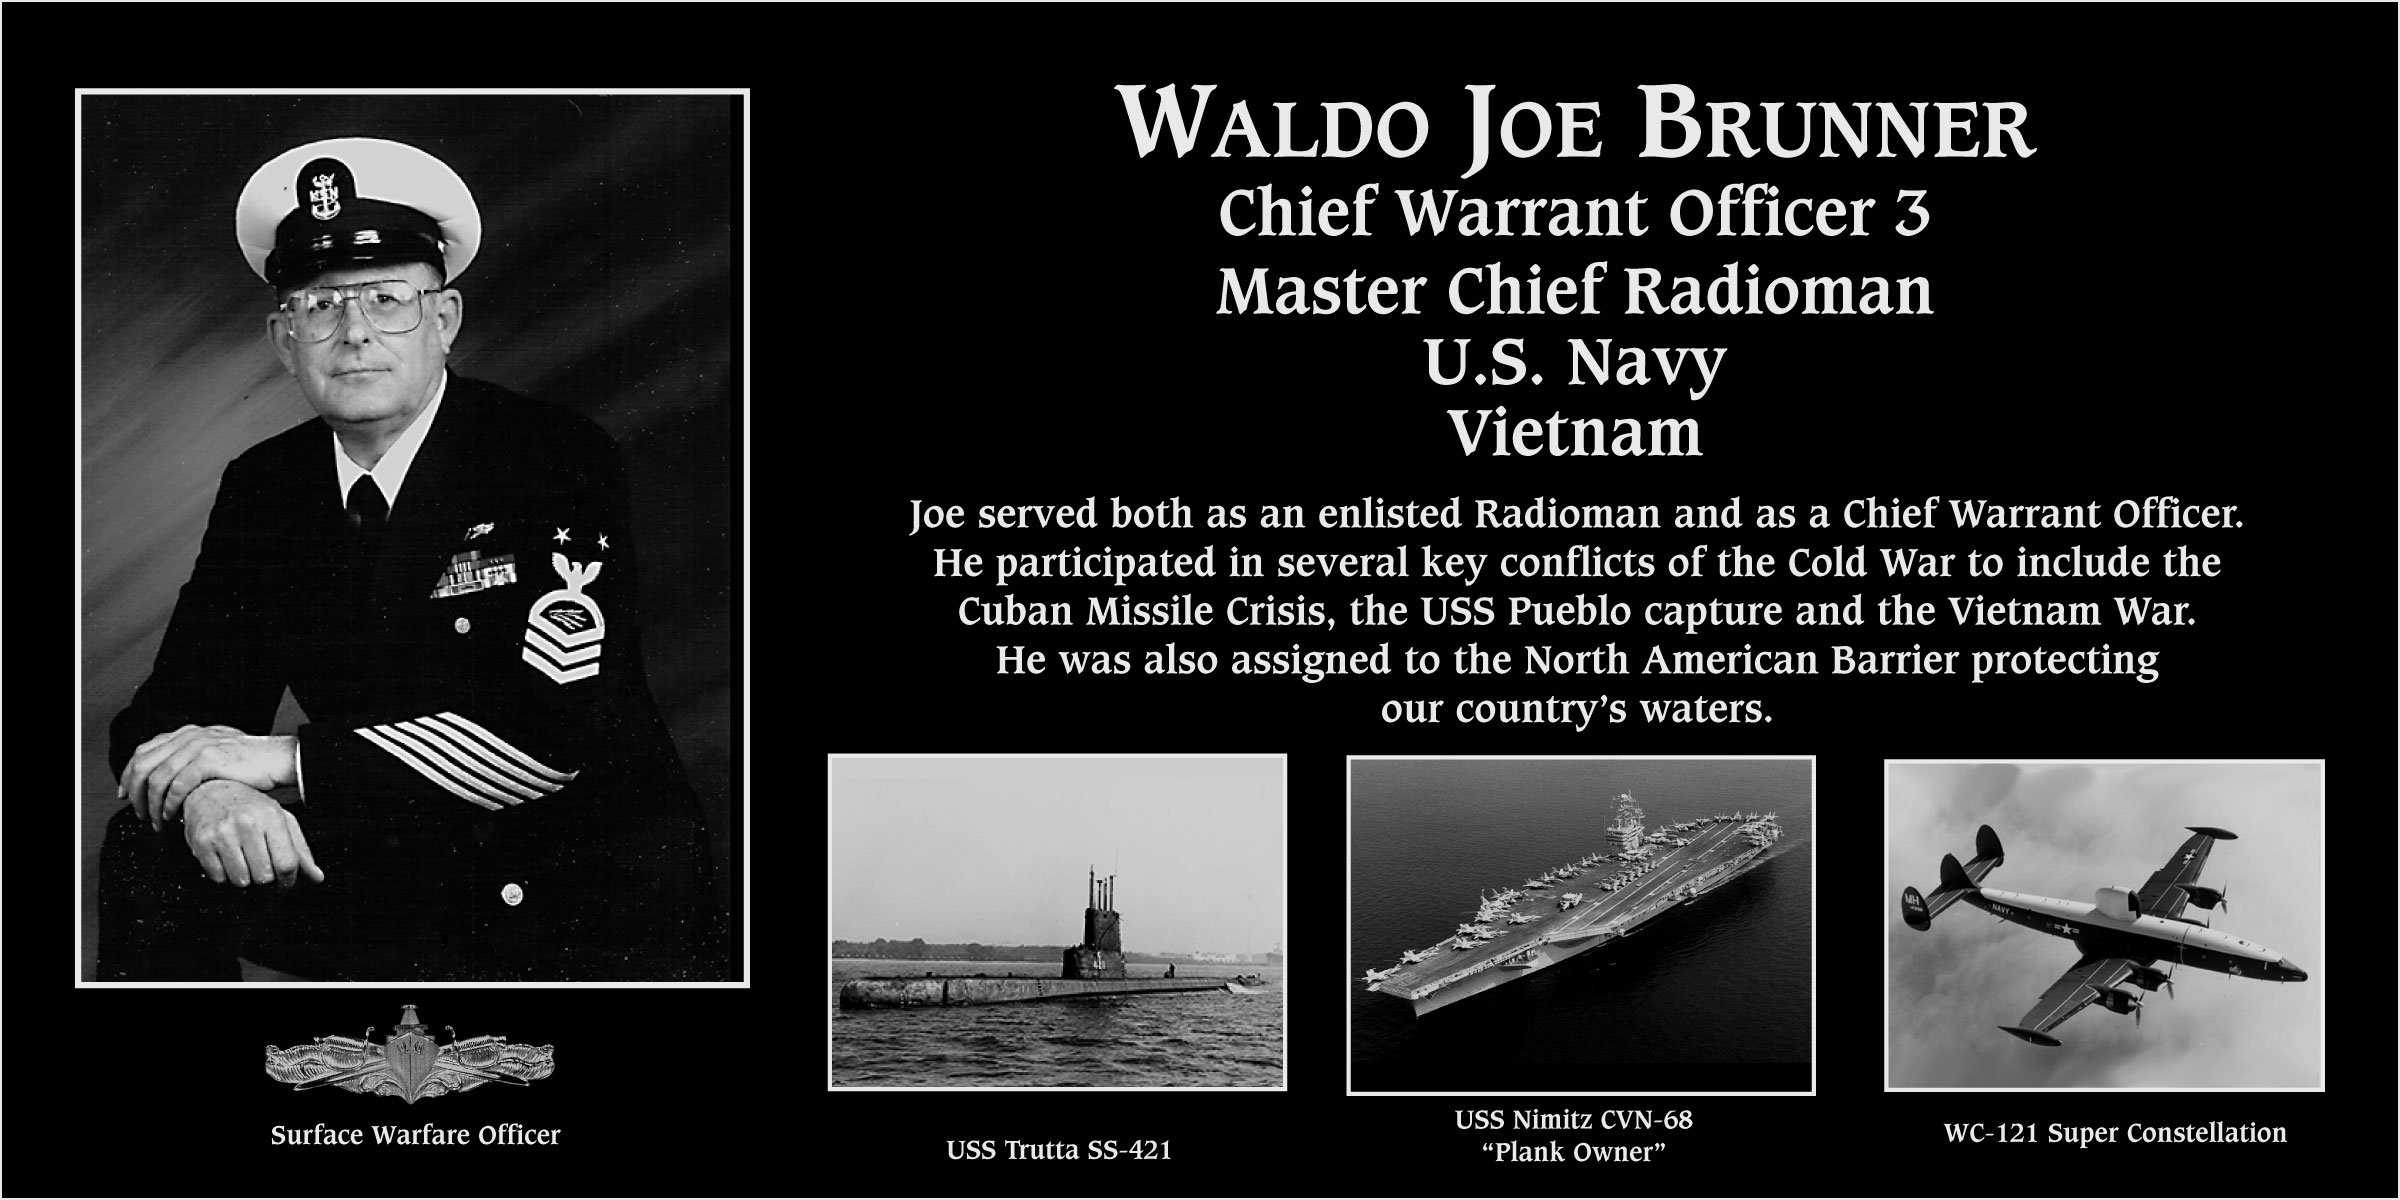 Waldo Joe Brunner